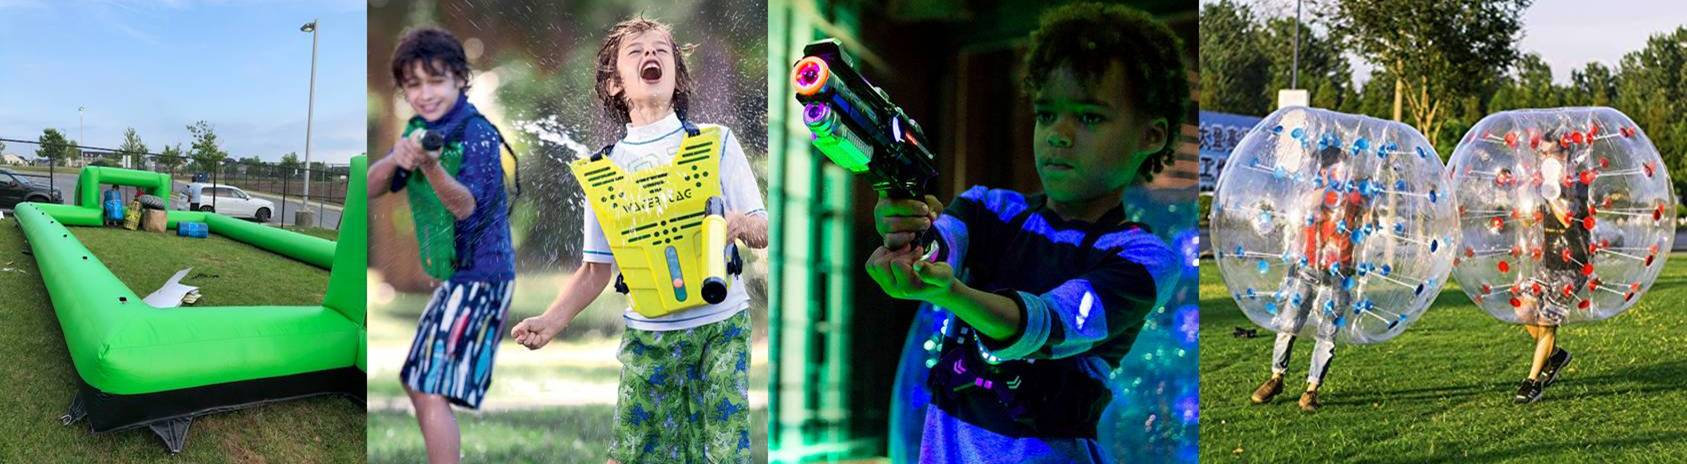 Arena games - laser tag, water tag, bubble soccer for Baltimore and Frederick County birthday parties